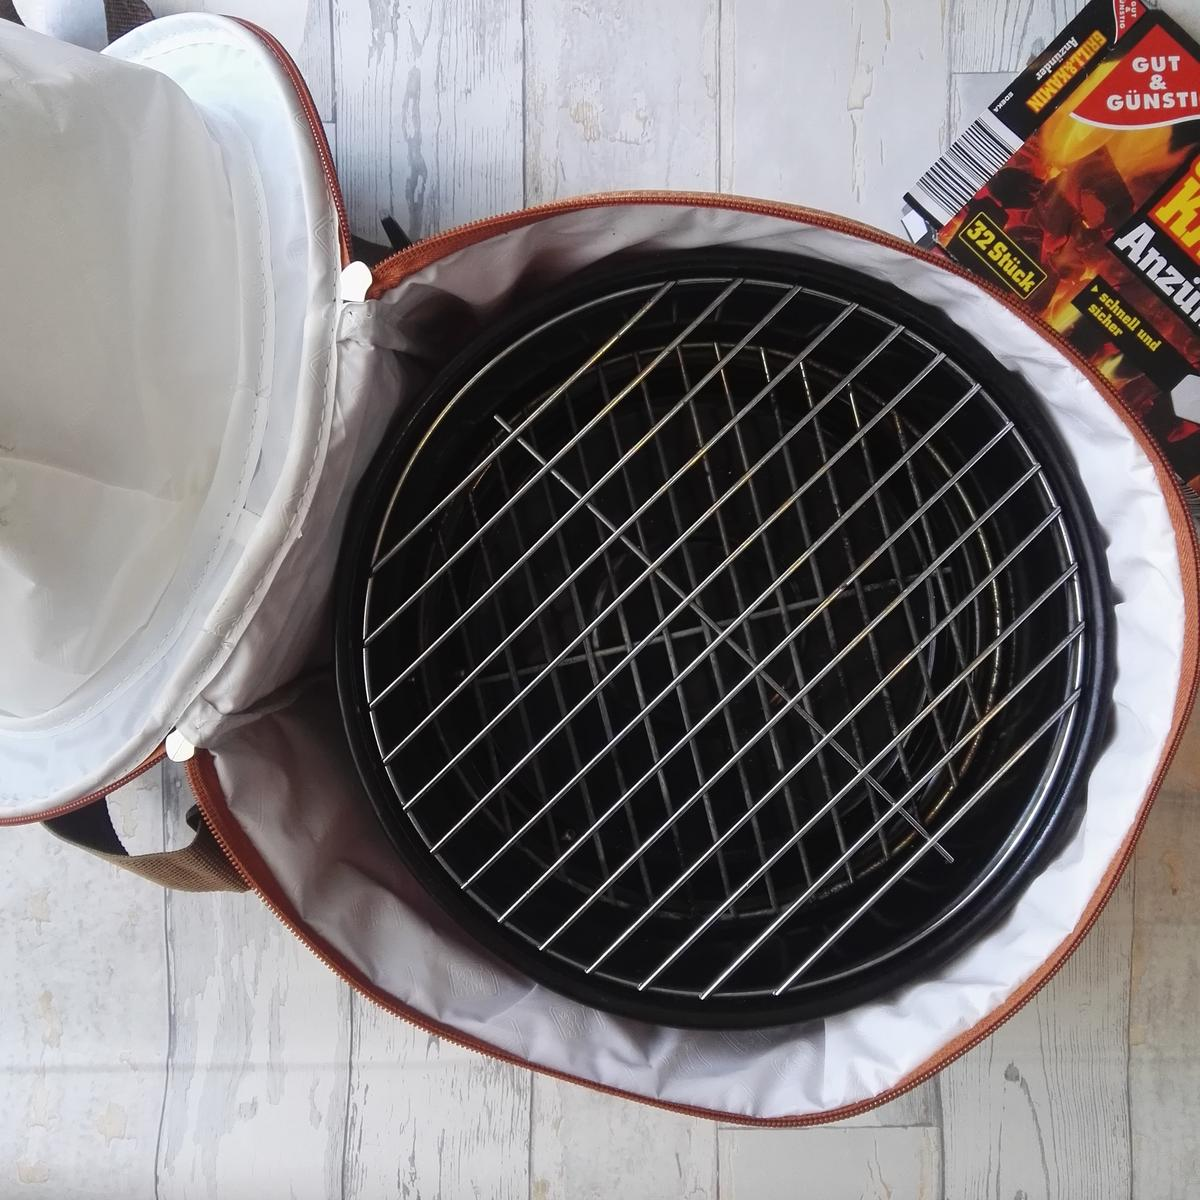 Camping Grill | Picknick Grill | Tragegrill in 66482